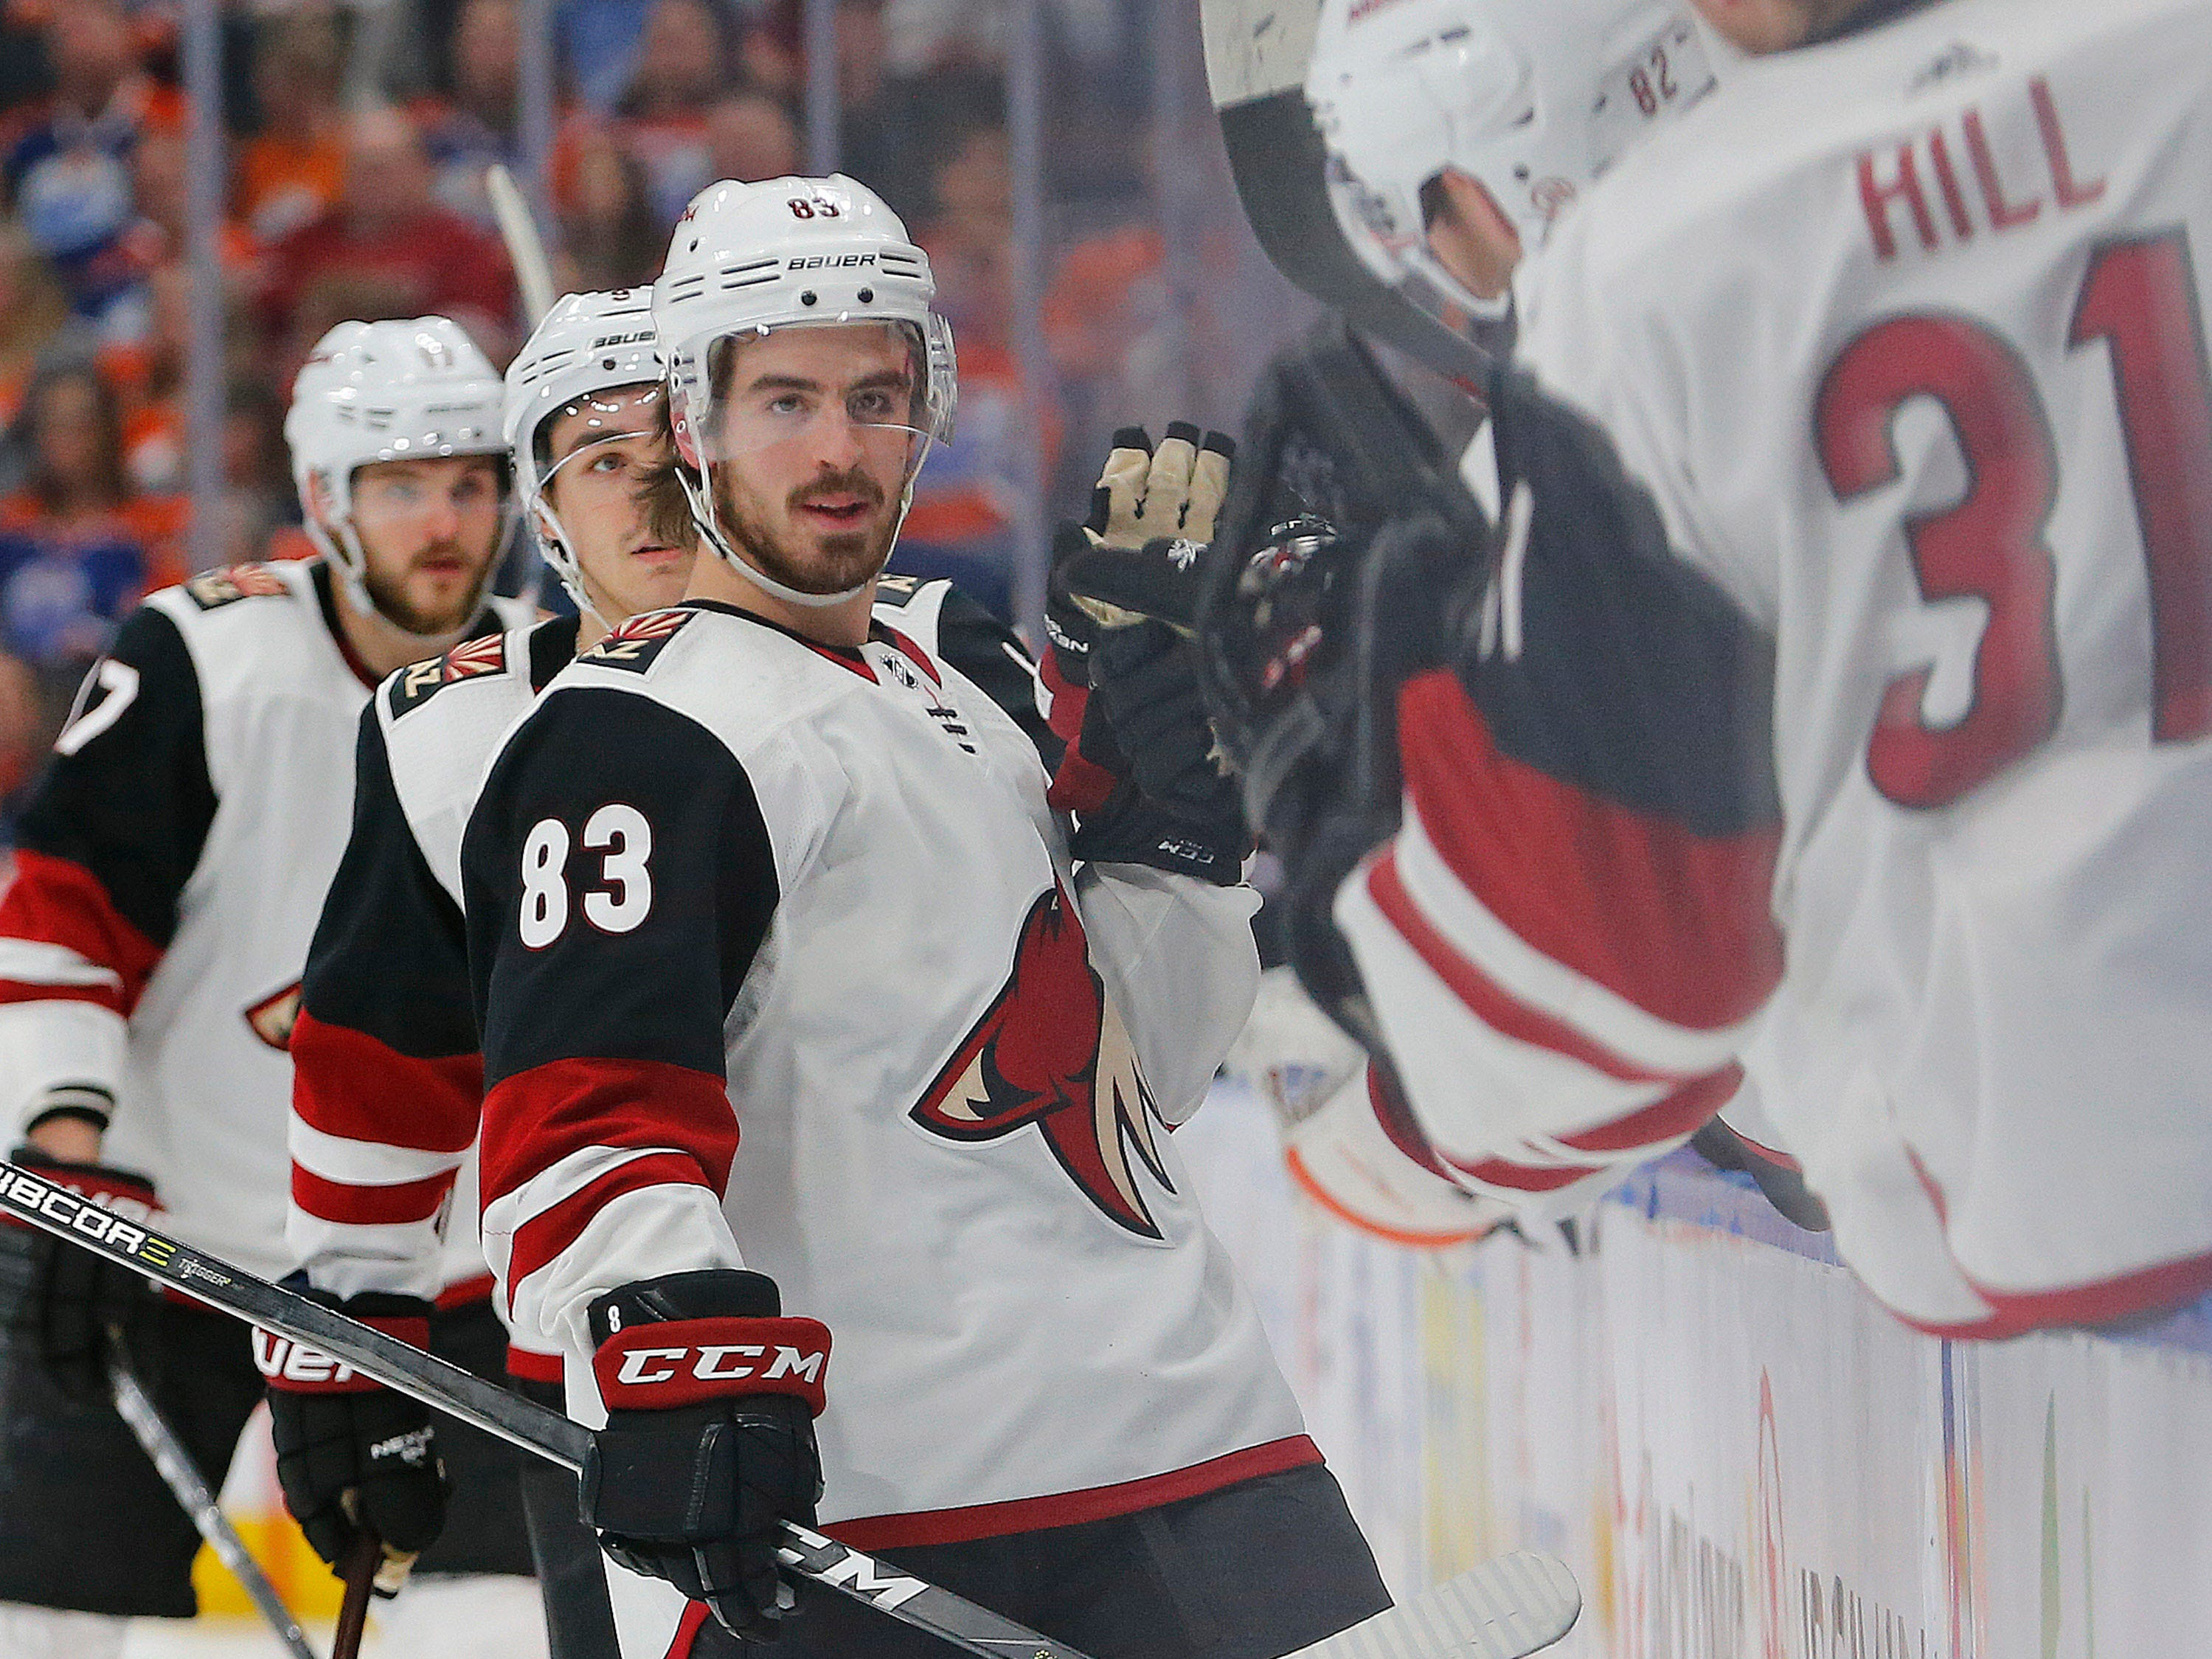 Jan 12, 2019; Edmonton, Alberta, CAN; Arizona Coyotes forward Conor Garland (83) celebrates a goal, his second of the night against the Edmonton Oilers during the third period. (Perry Nelson-USA TODAY Sports)